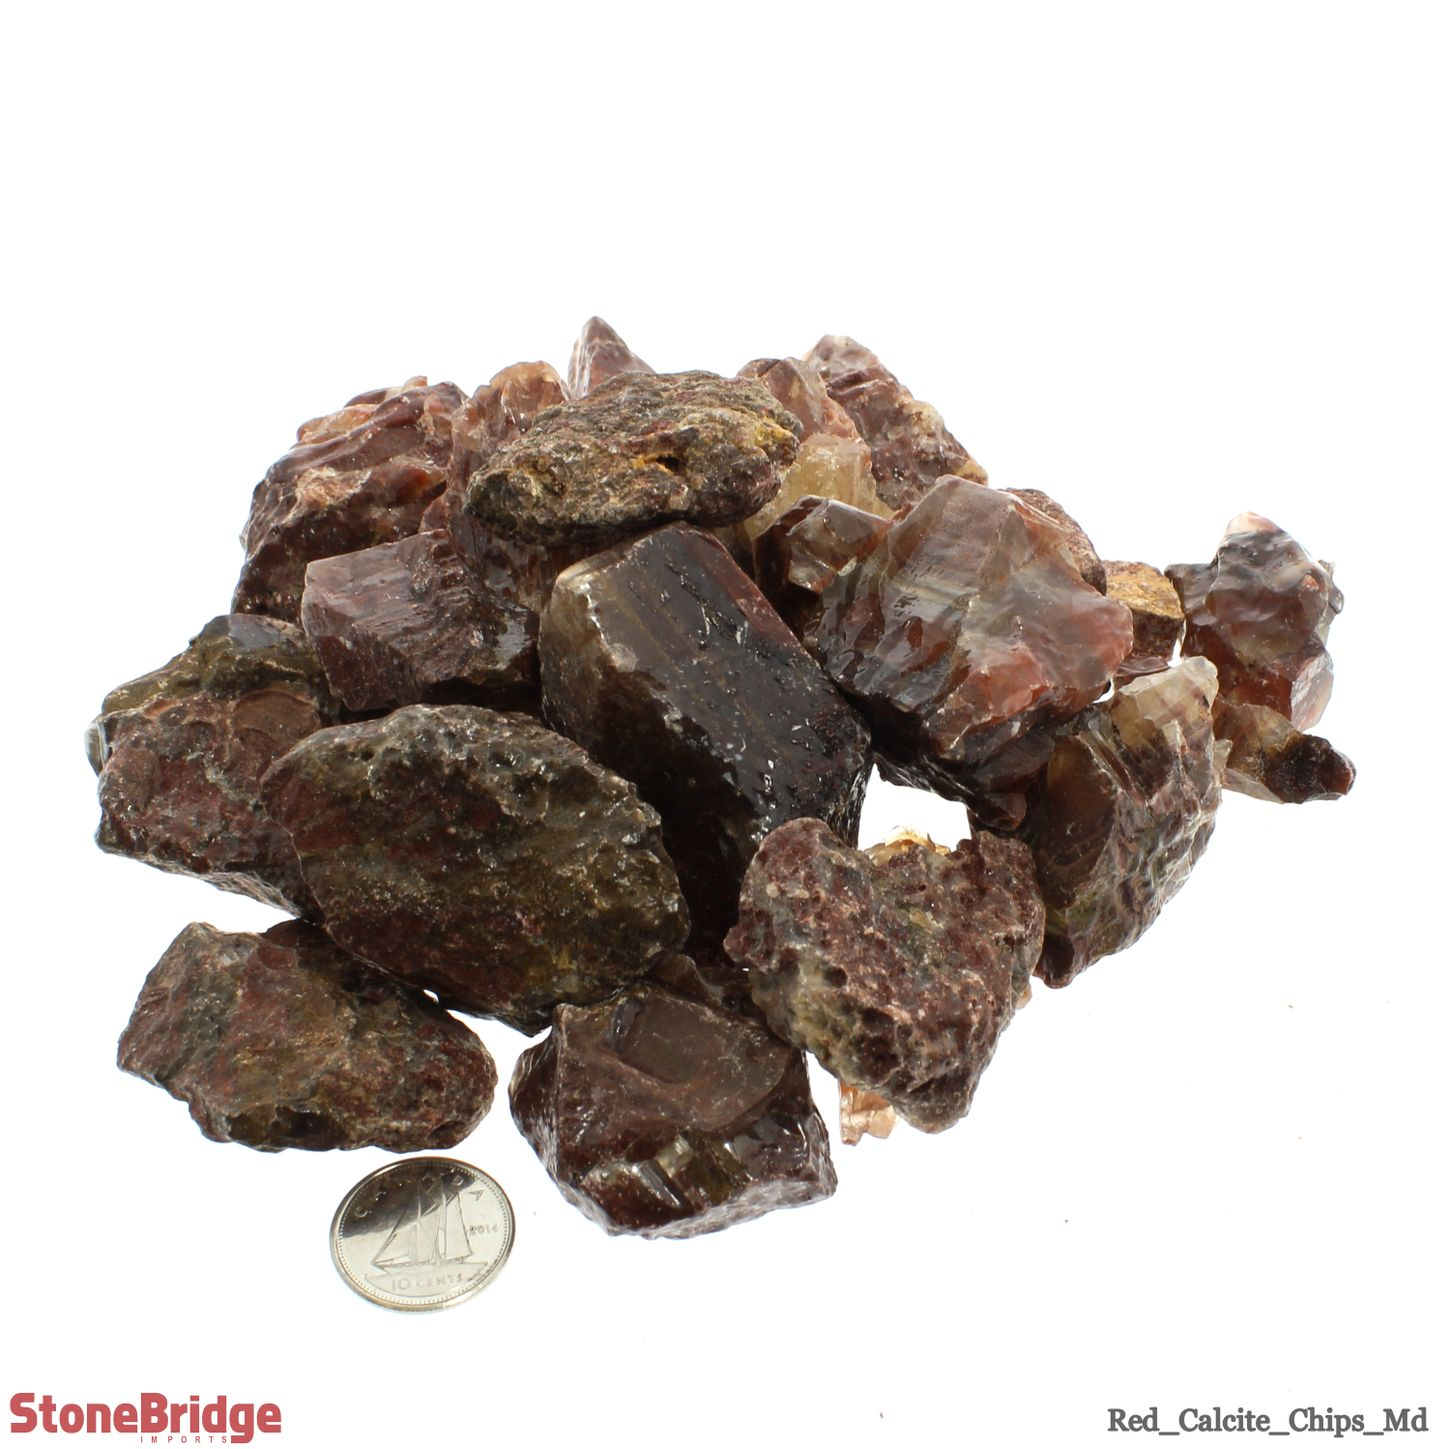 RSCHCAREmd_Red_Calcite_Chips_Md_1.jpg